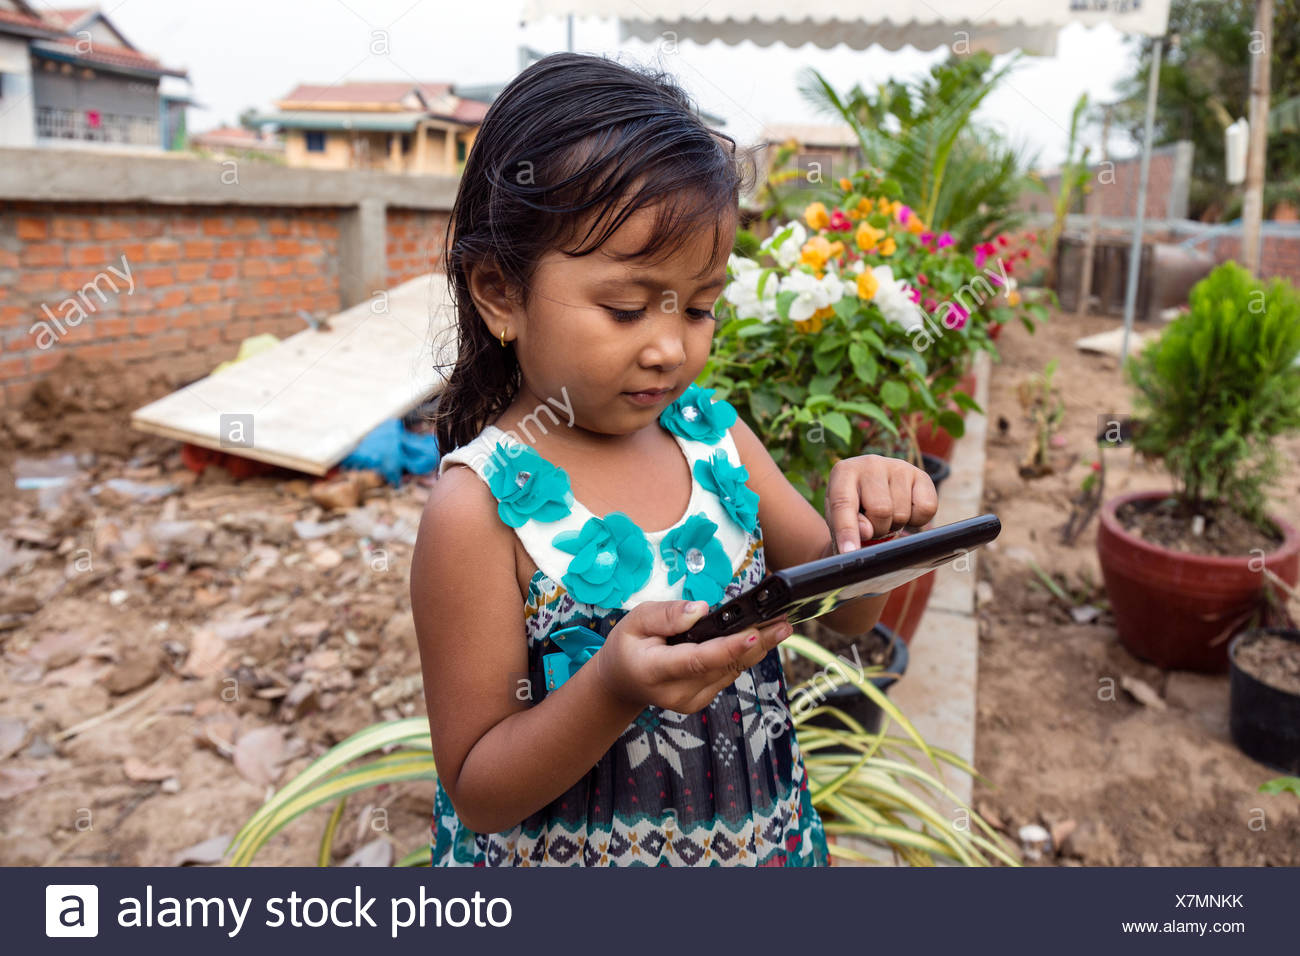 Little girl playing with a tablet computer, Phnom Penh, Cambodia - Stock Image